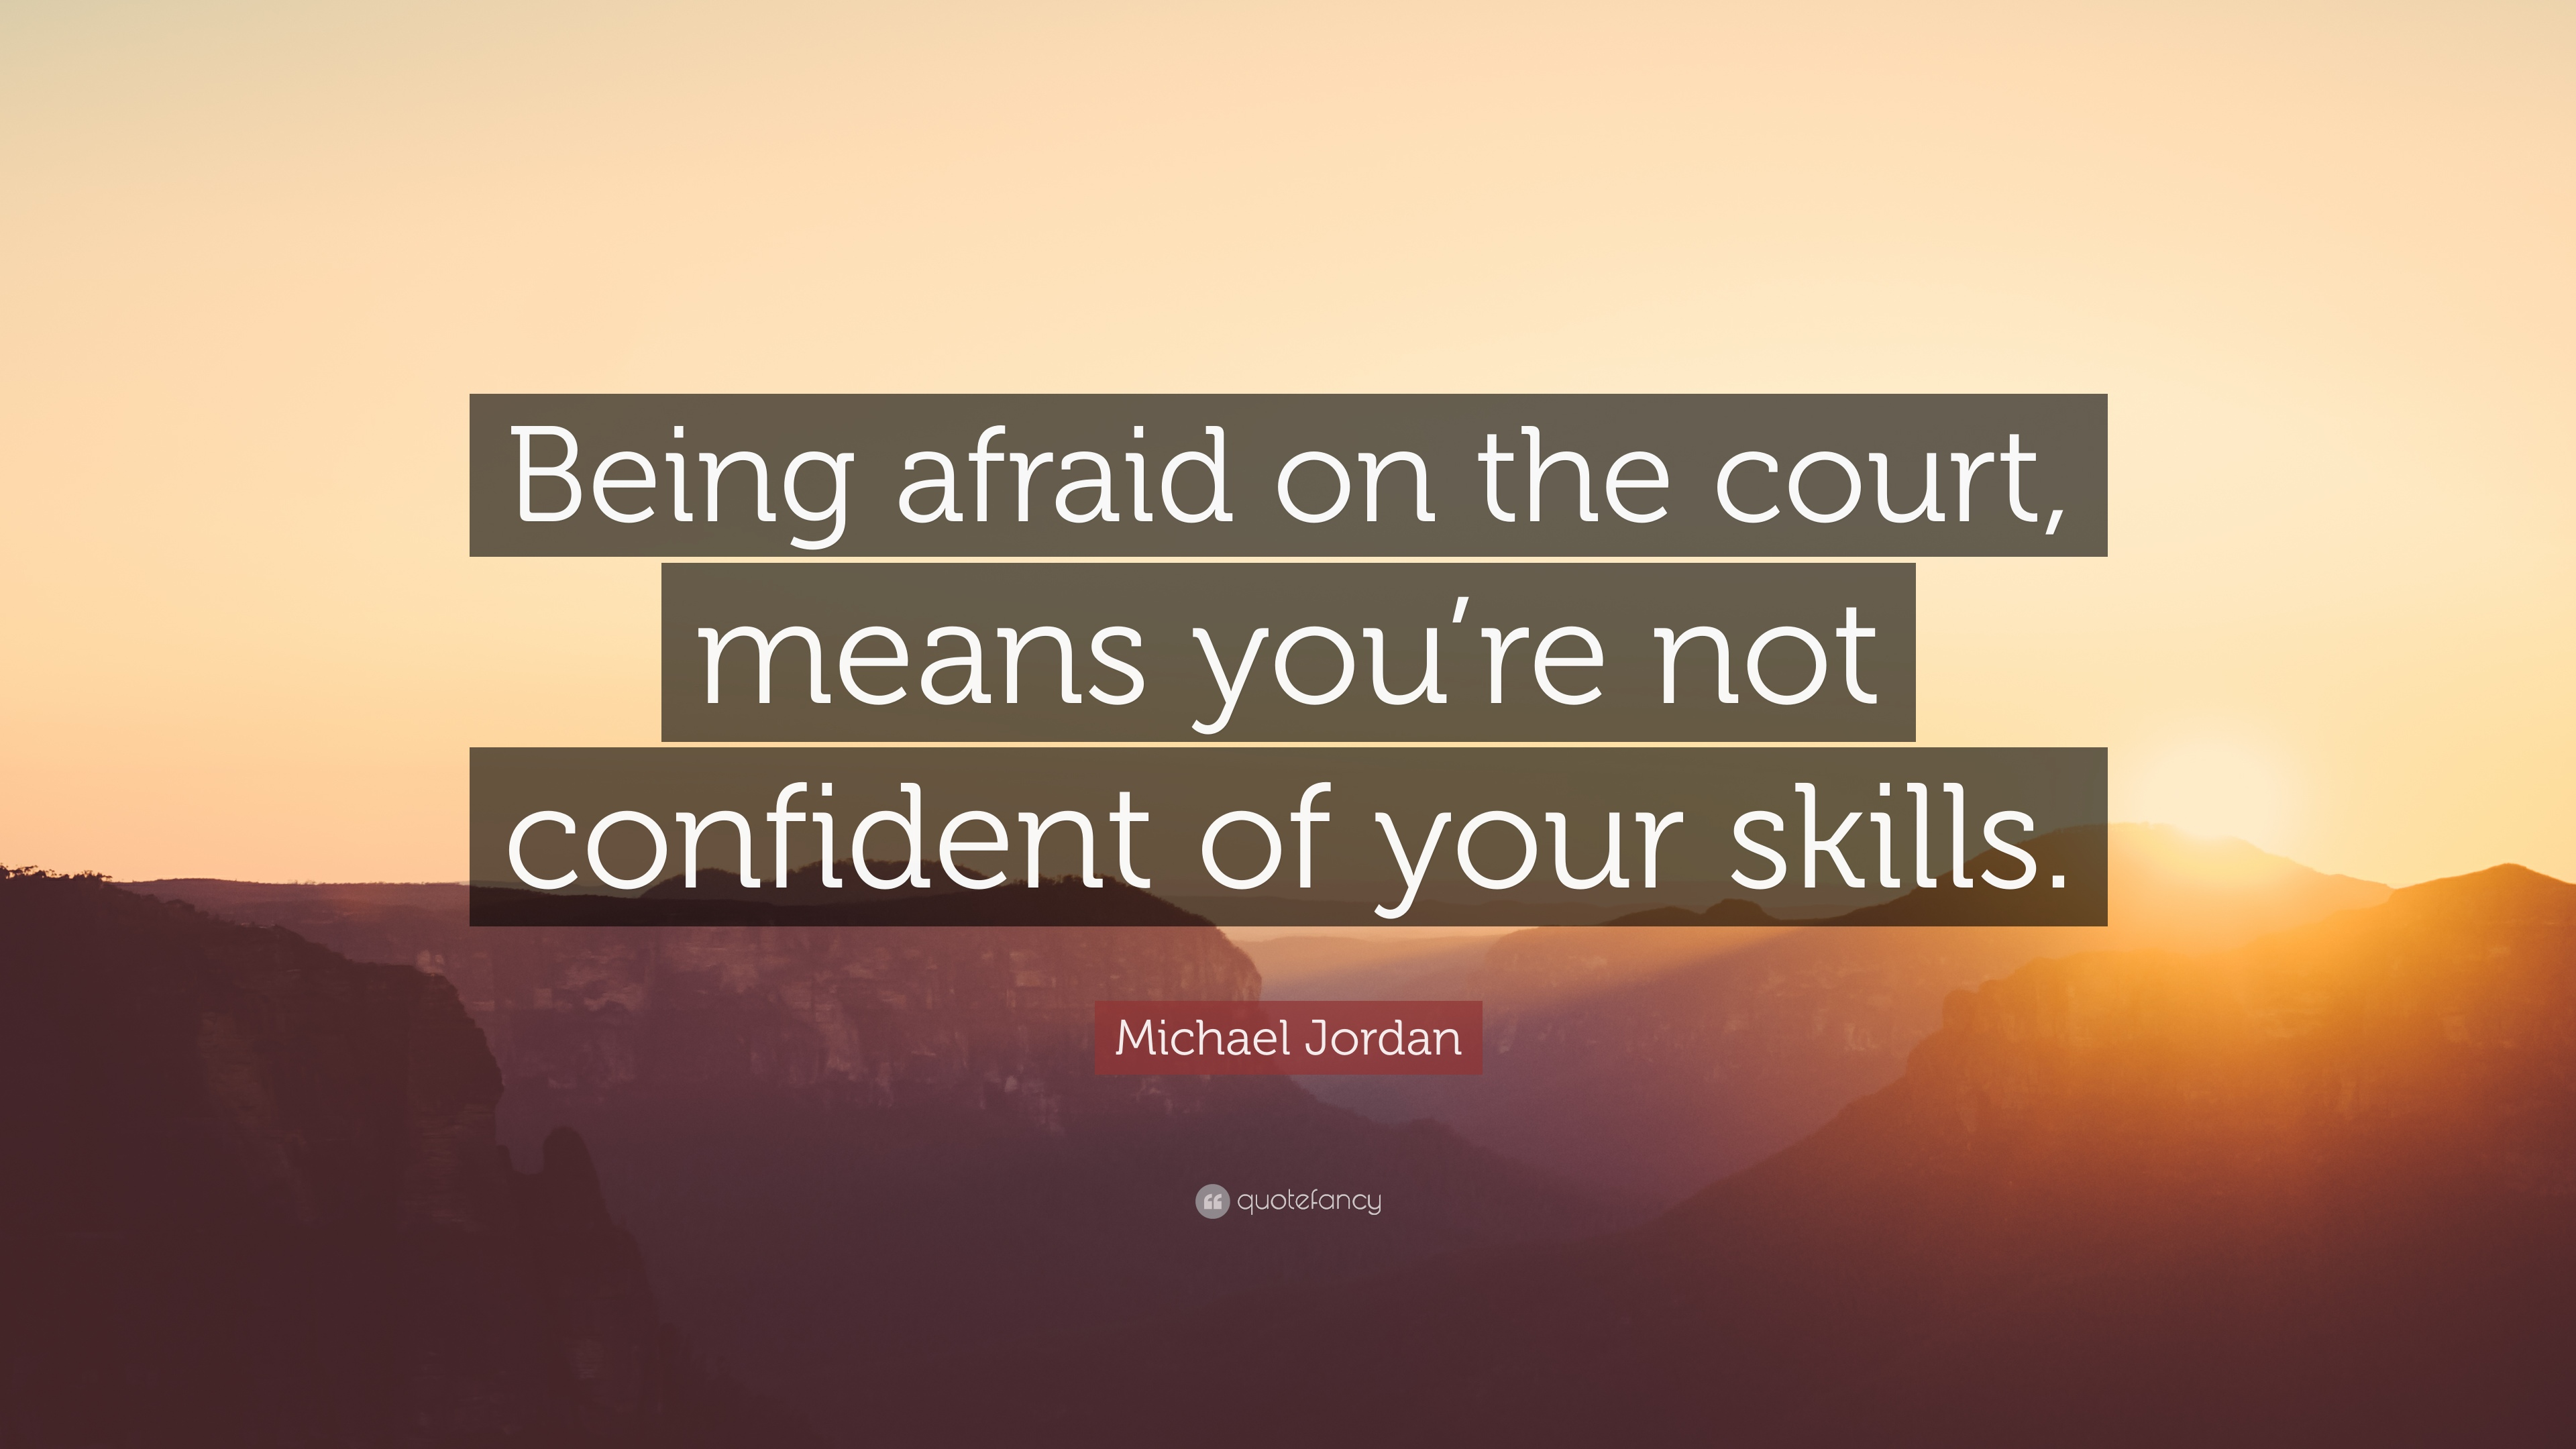 Quotes About Being Confident Quotes About Skills 40 Wallpapers  Quotefancy